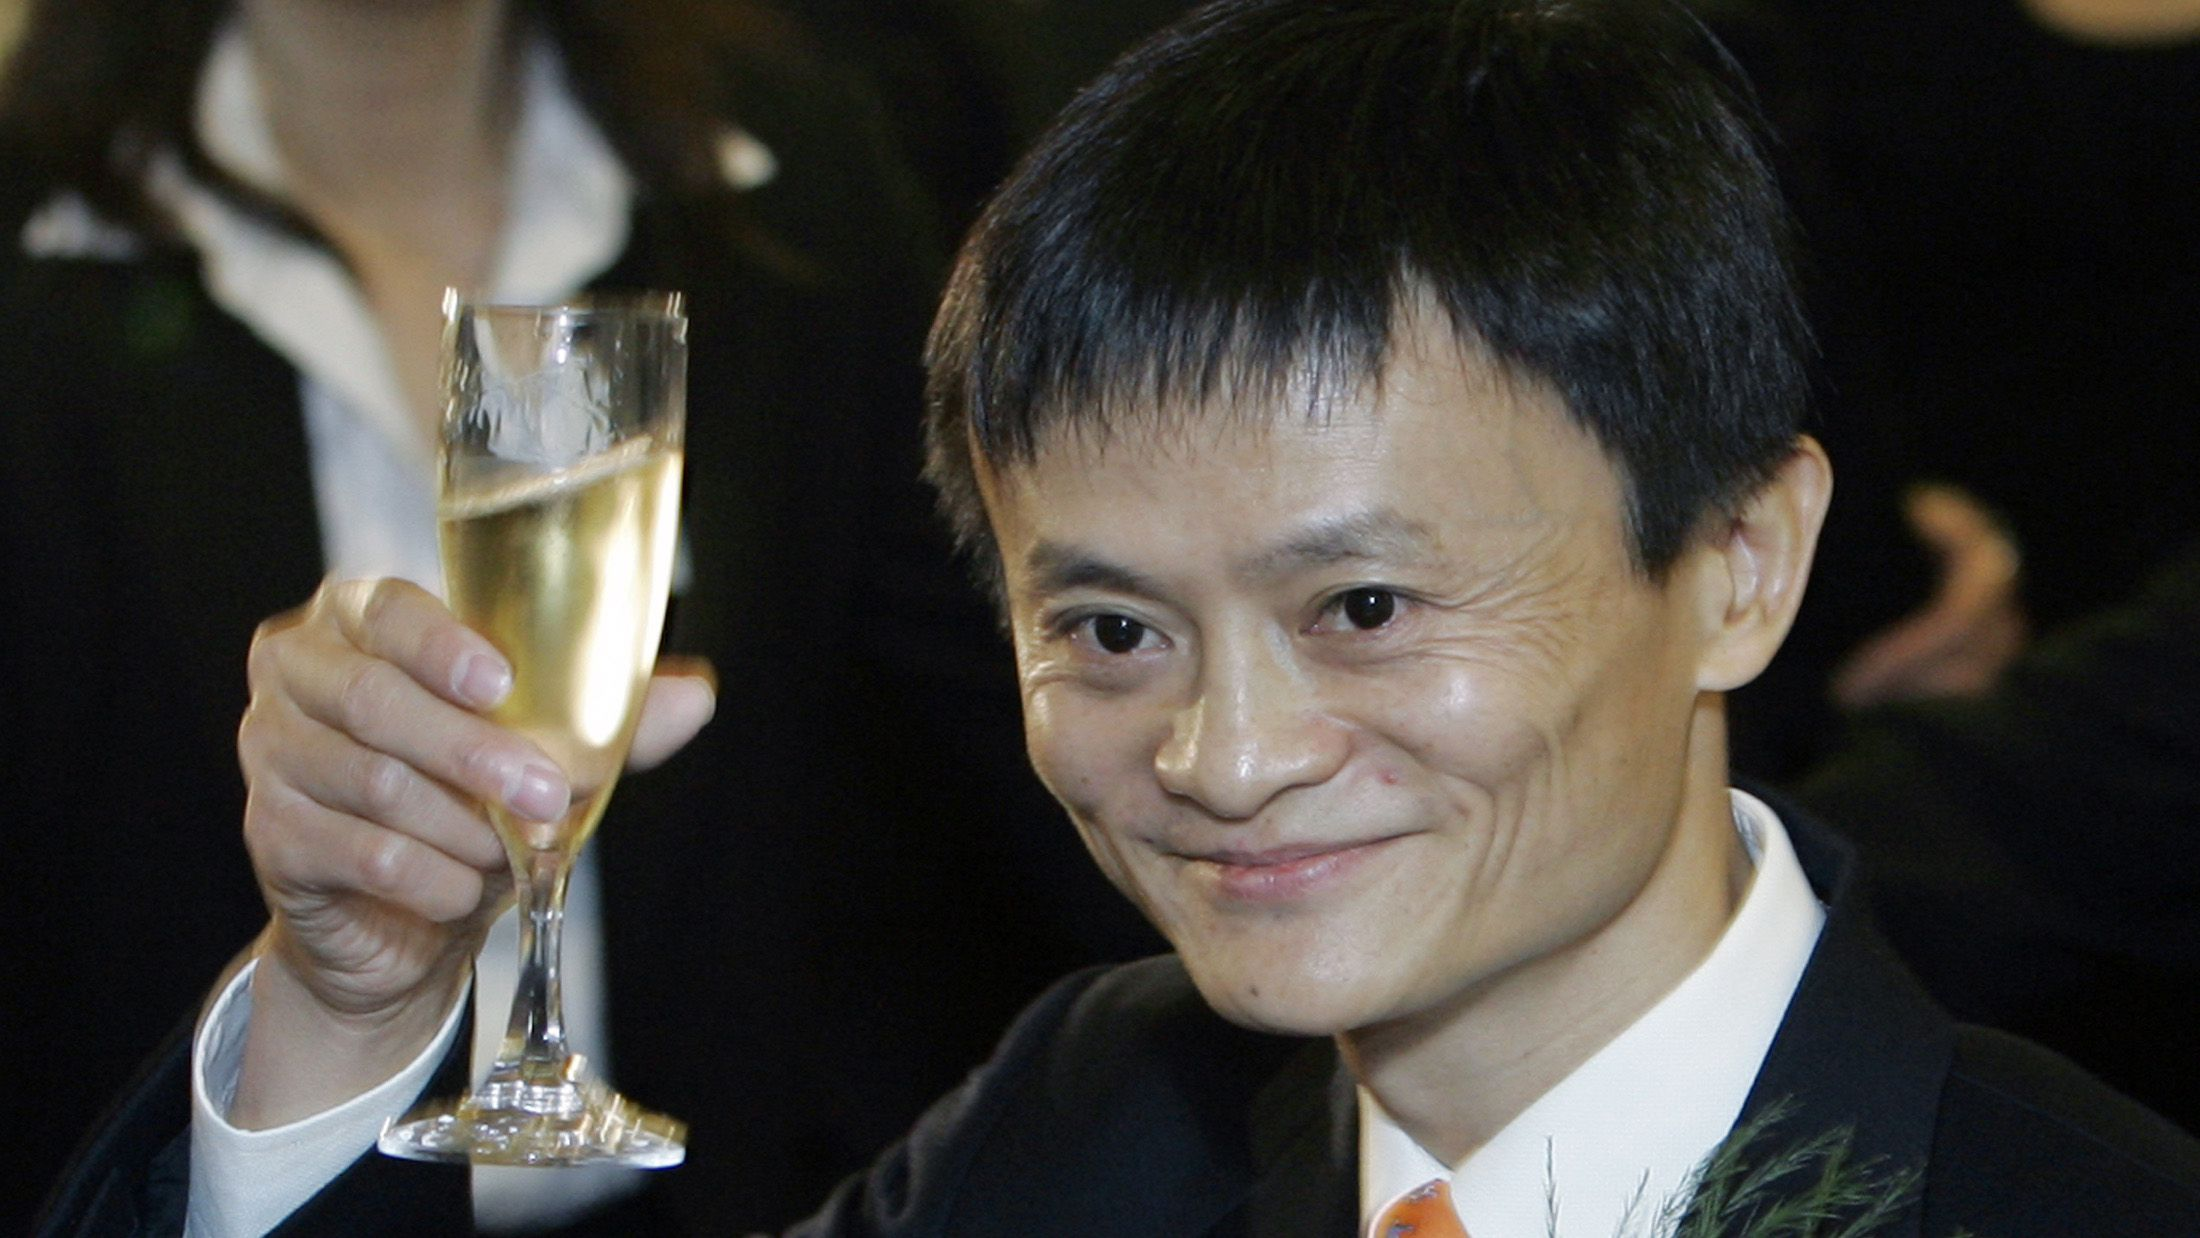 Ma Yun, founder and chief operating officer of China's Alibaba.com. toasts at the listing ceremony at the Hong Kong Stock Exchange, Tuesday, Nov. 6, 2007. Chinese e-commerce portal Alibaba.com made a strong debut on the Hong Kong stock market Tuesday, with its shares soaring 137 percent to 32 Hong Kong dollars (US$4.12; euro2.84) within minutes of its listing. (AP Photo/Kin Cheung yu'e bao alipay chinese banking shadow banking money market fund